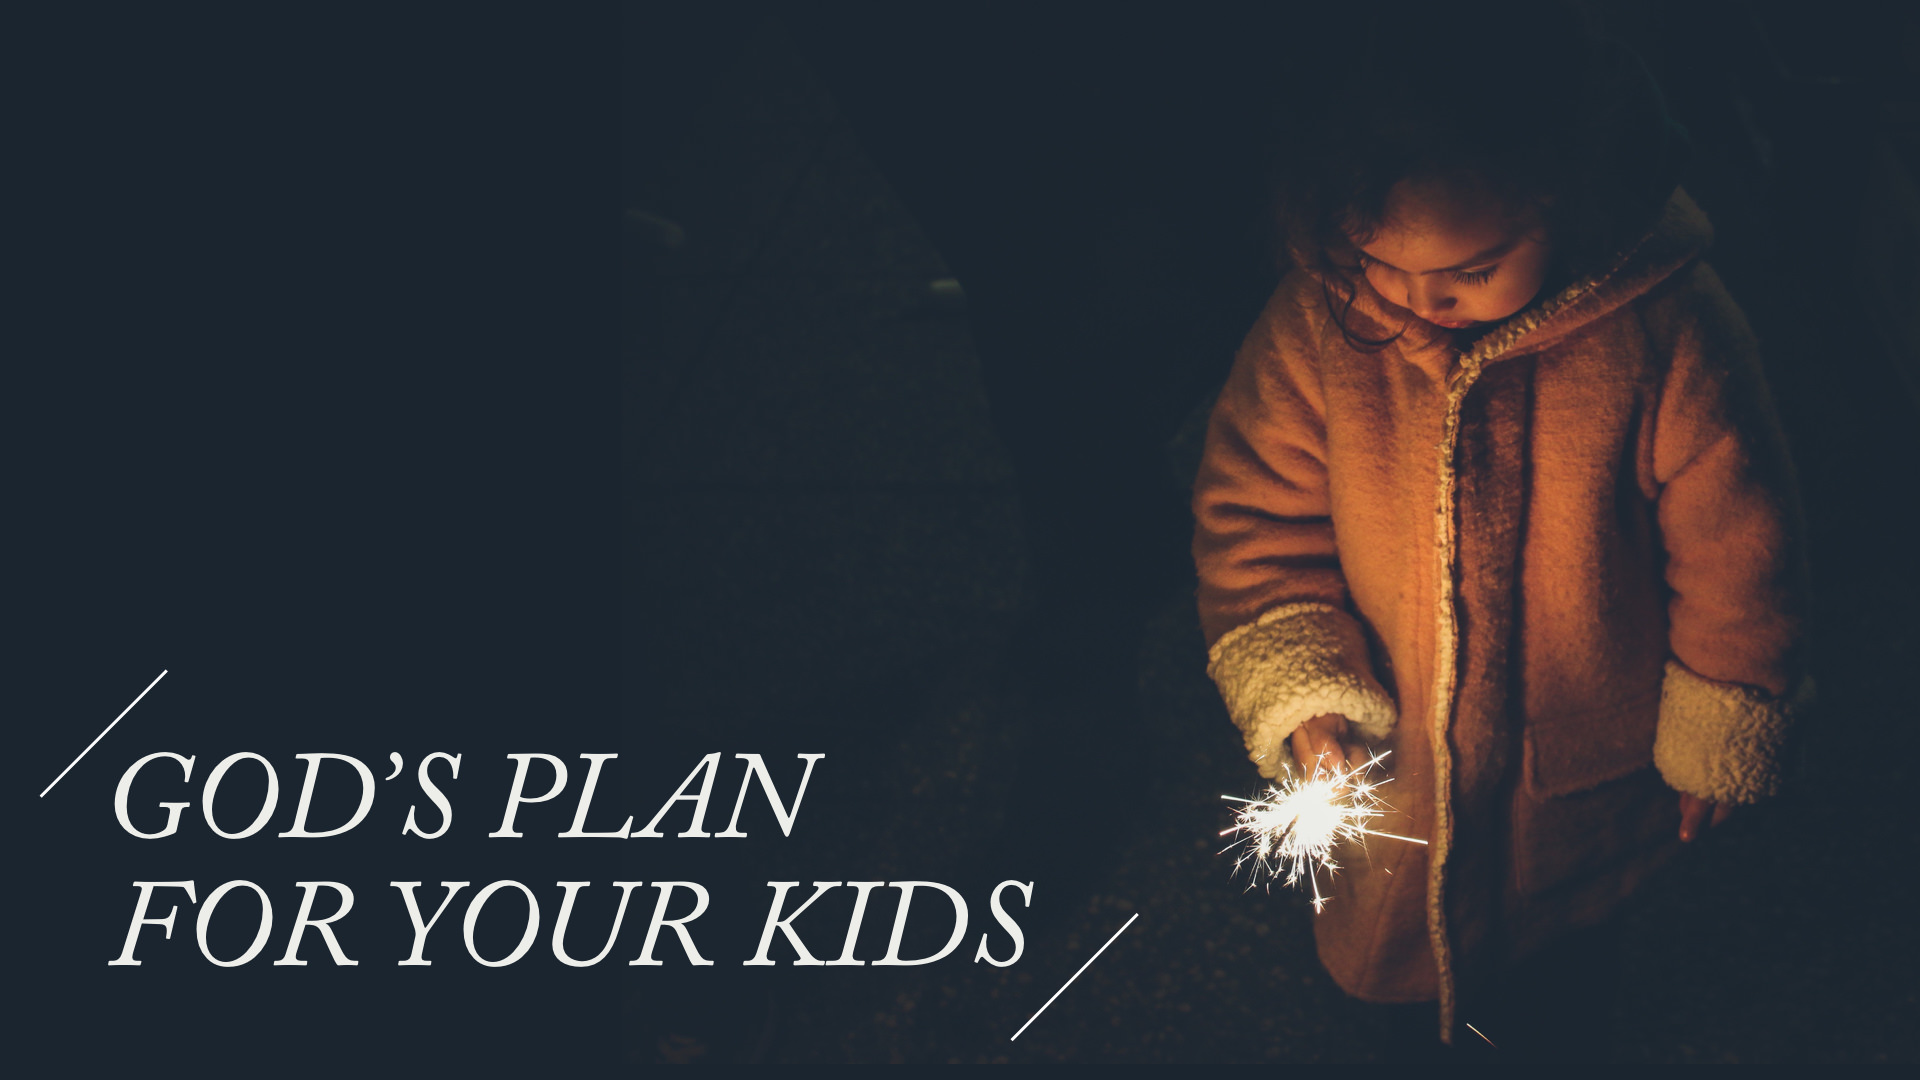 Hint: that plan involves you.